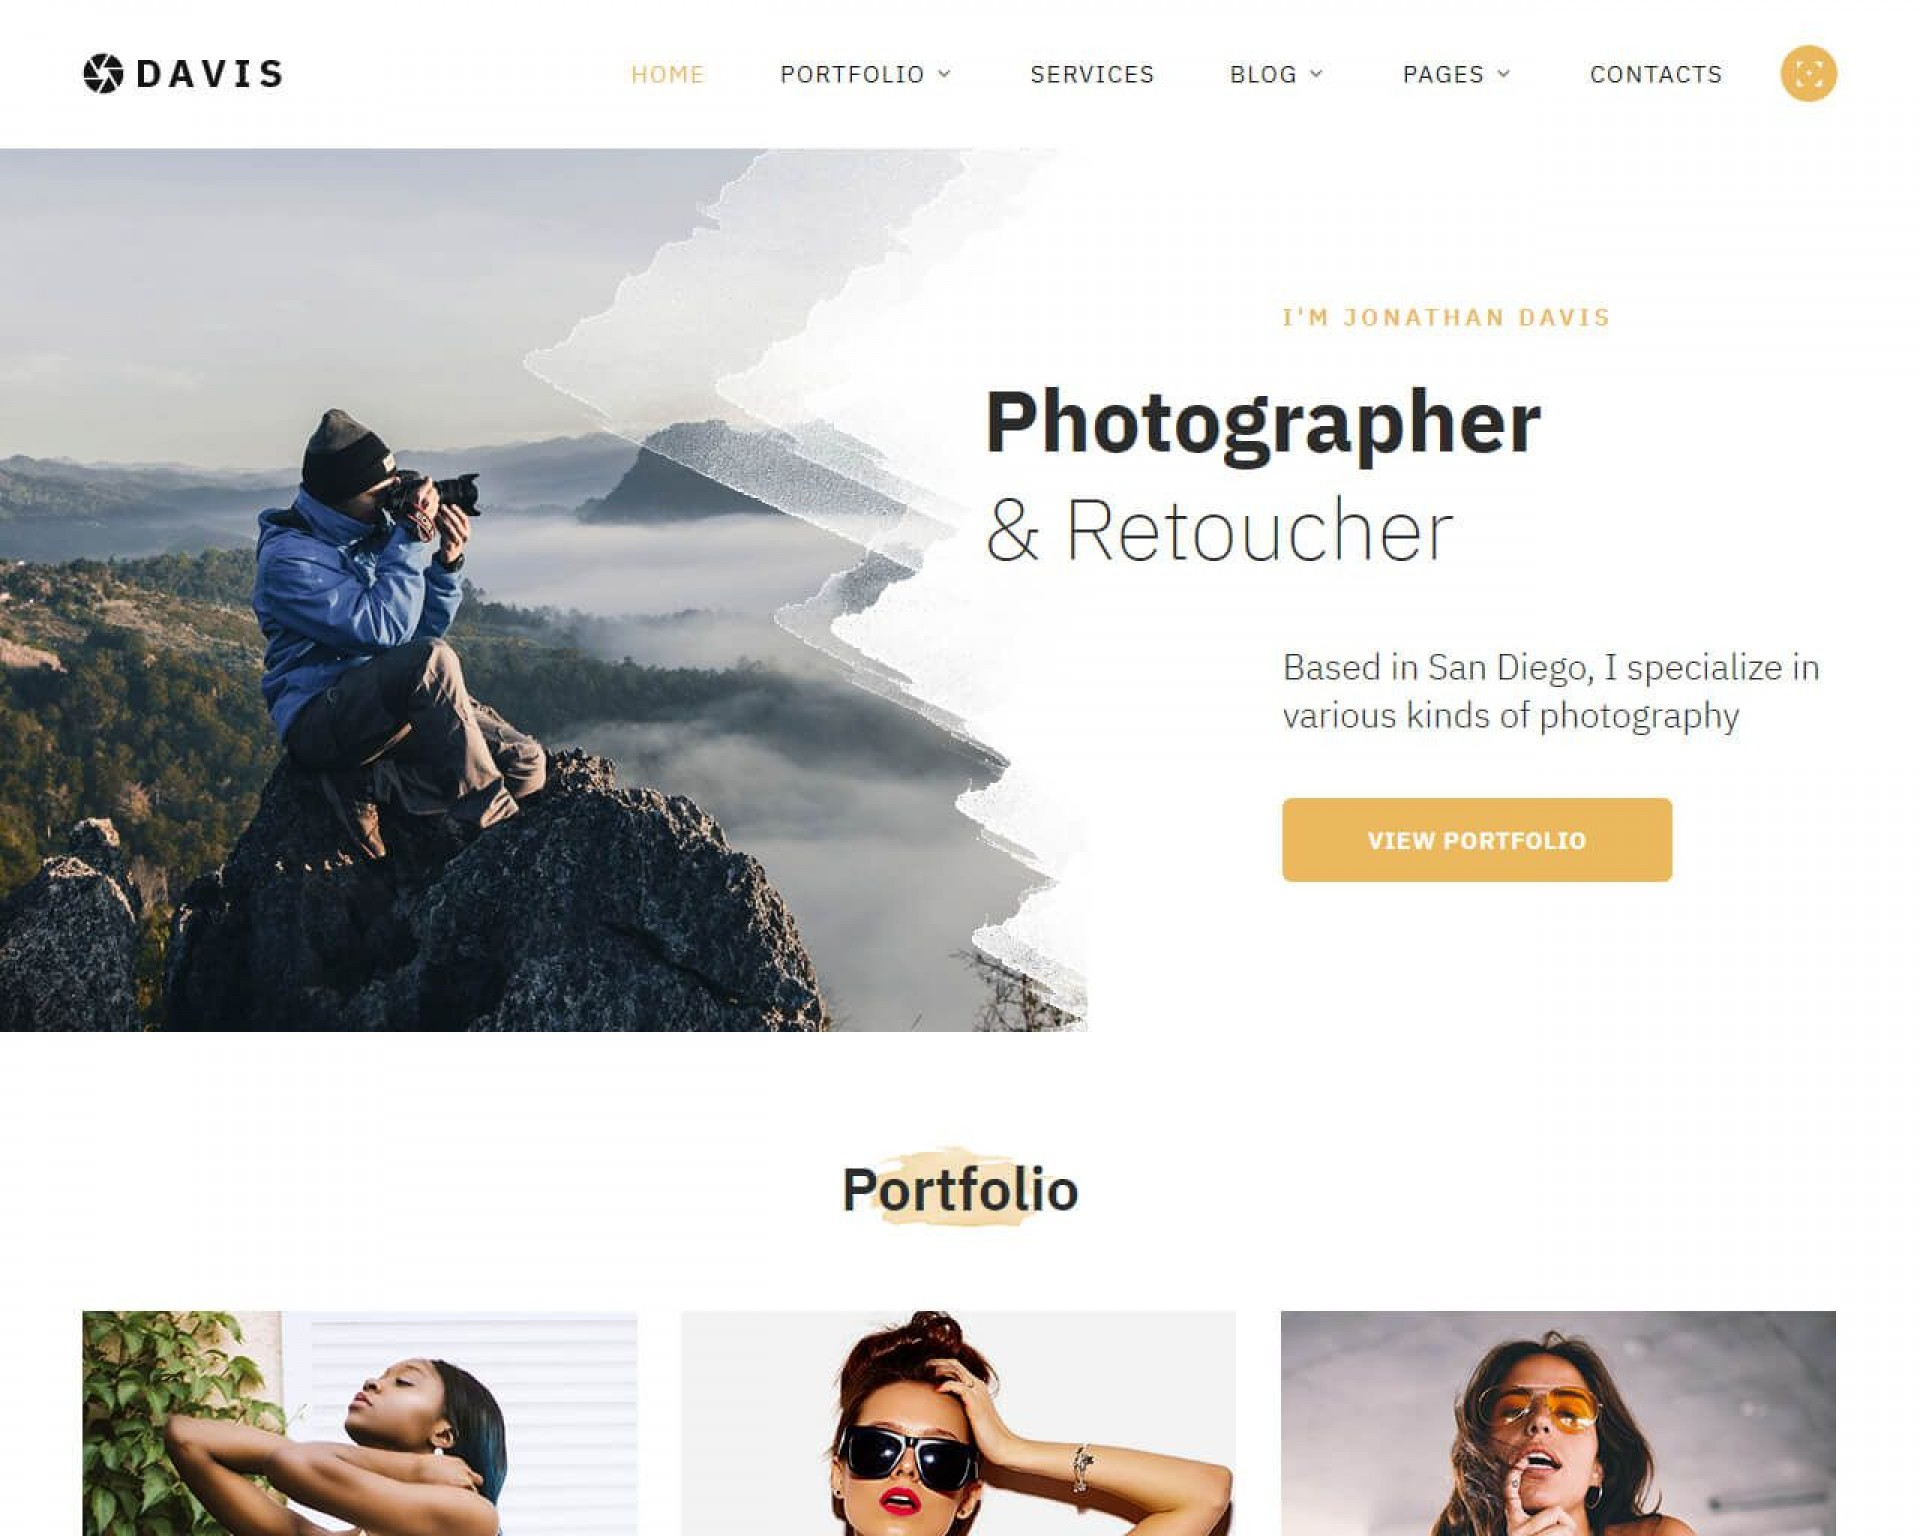 003 Unusual Website Template For Photographer Inspiration  Photographers Free Responsive Photography Php Best1920